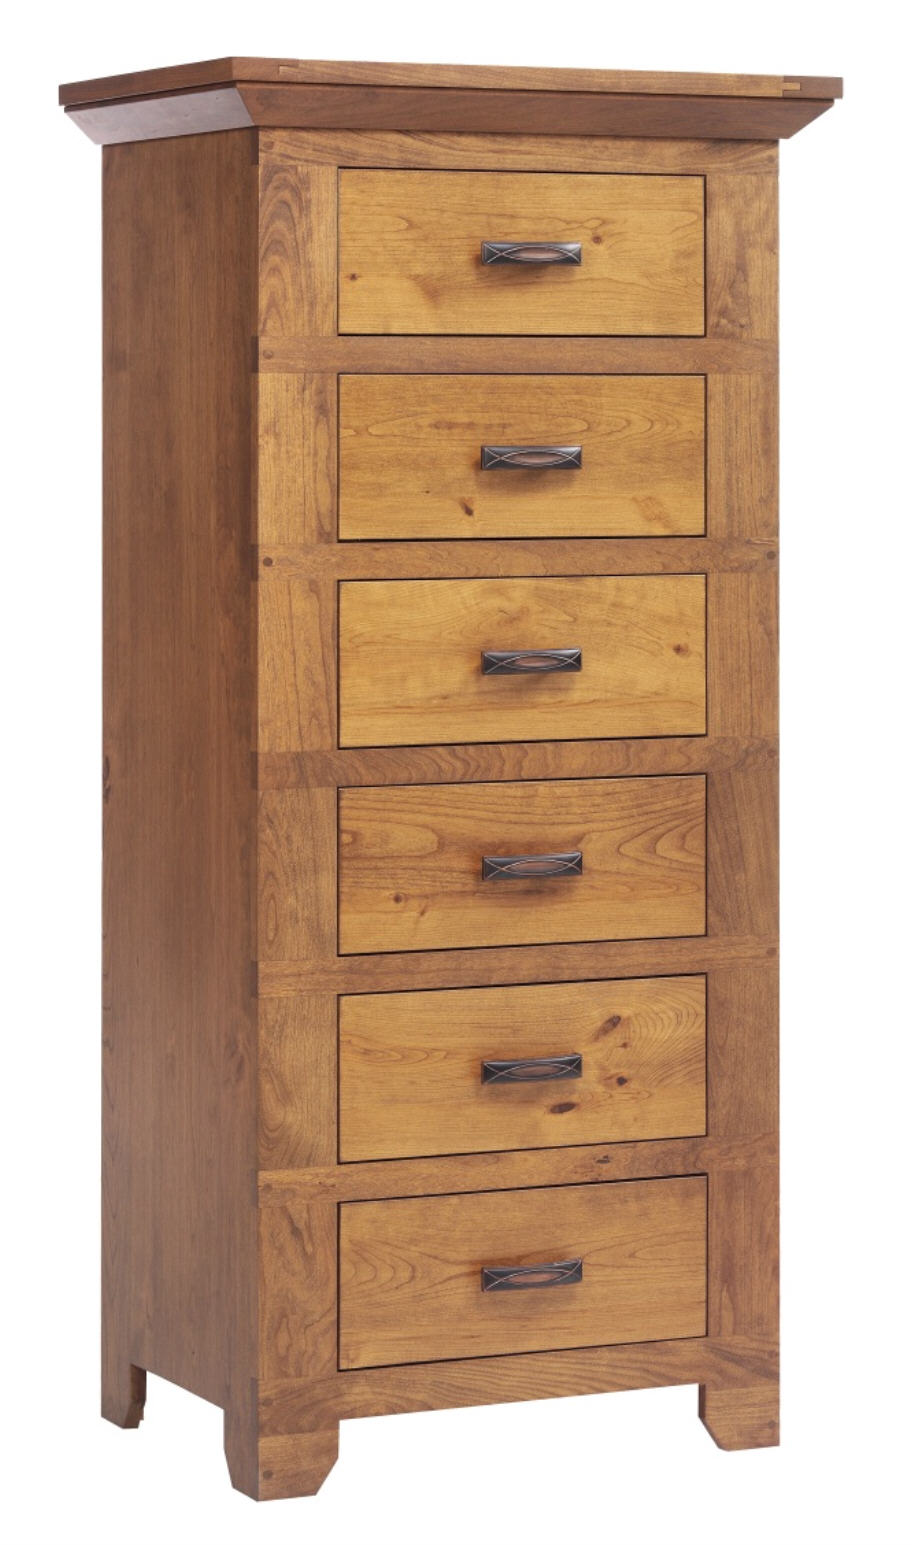 Redmond Wellington Lingerie Chest